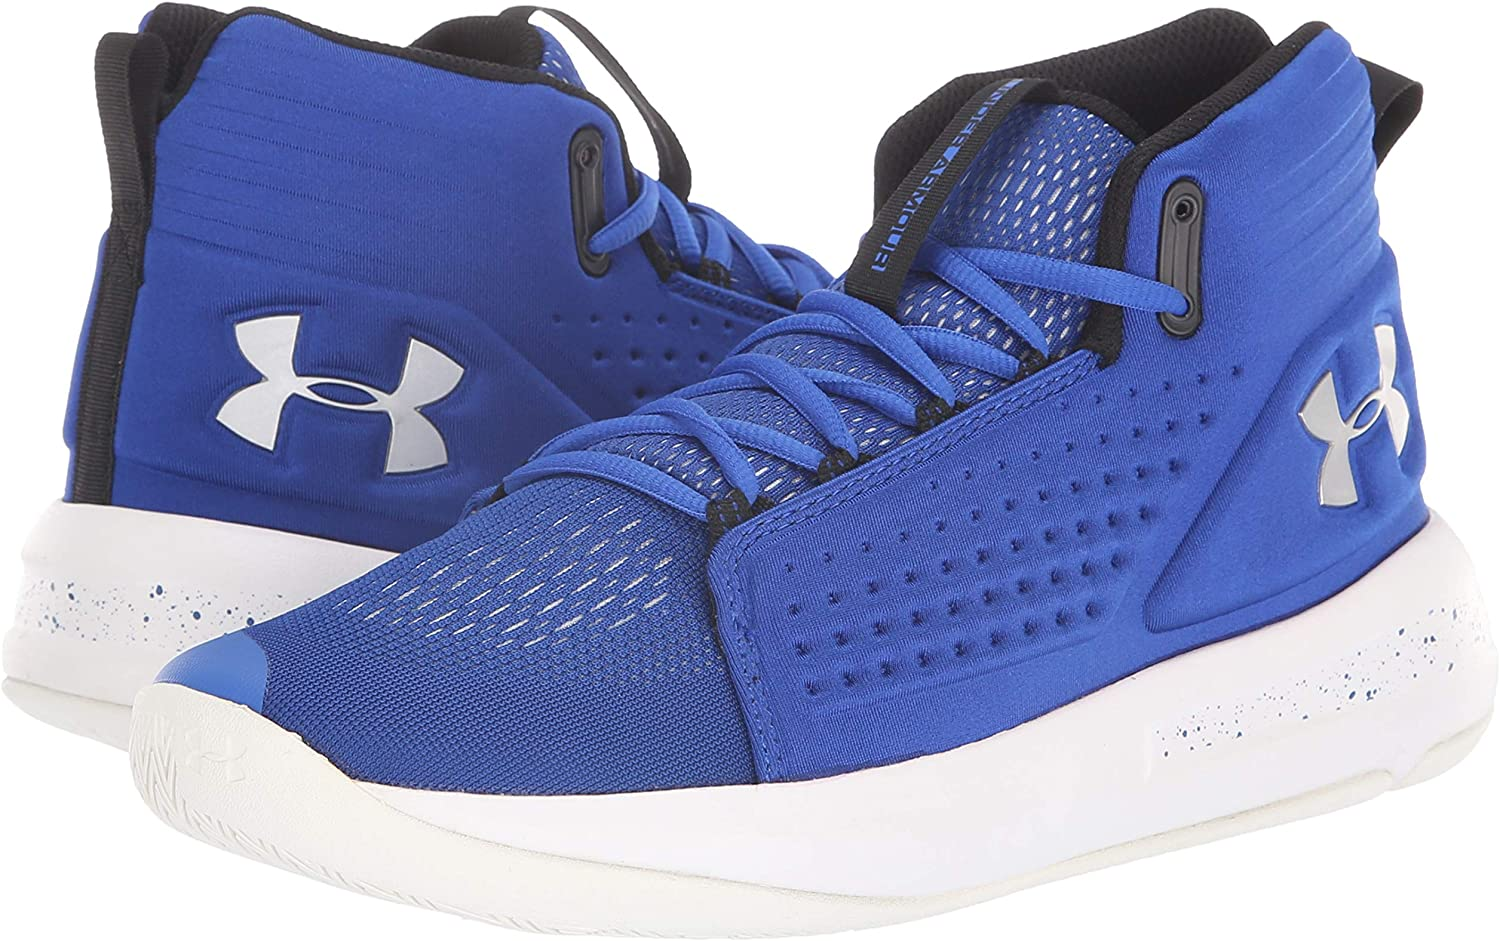 Chaussures de Basketball Homme Under Armour UA Torch